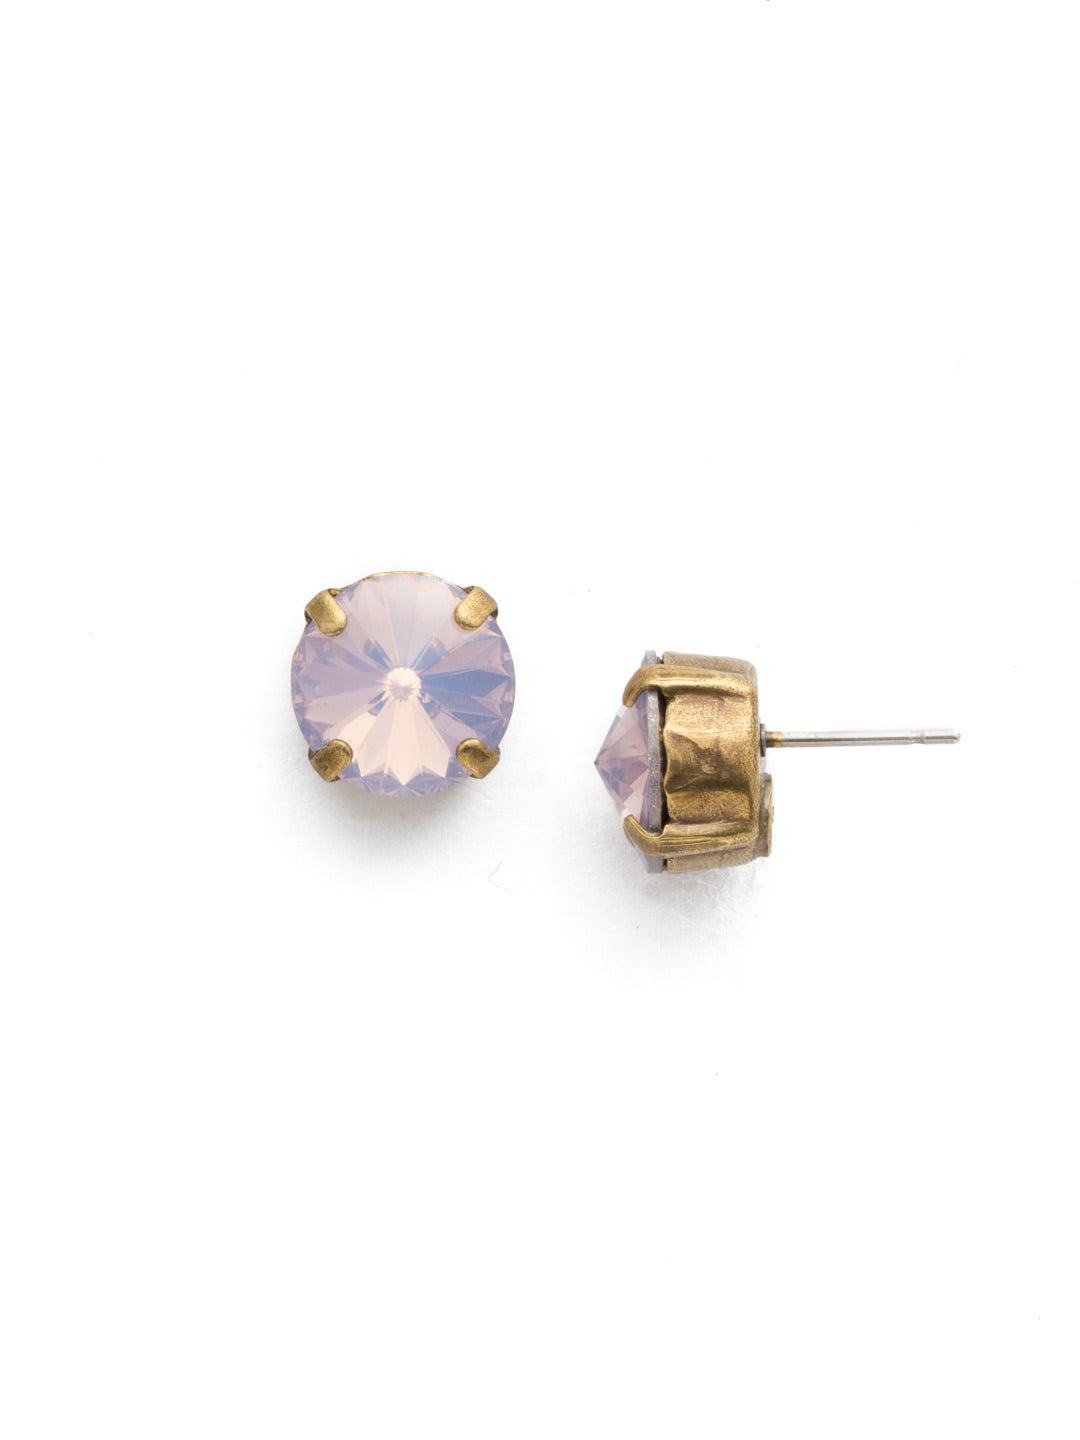 Round Crystal Stud Earrings - ECM14AGROW